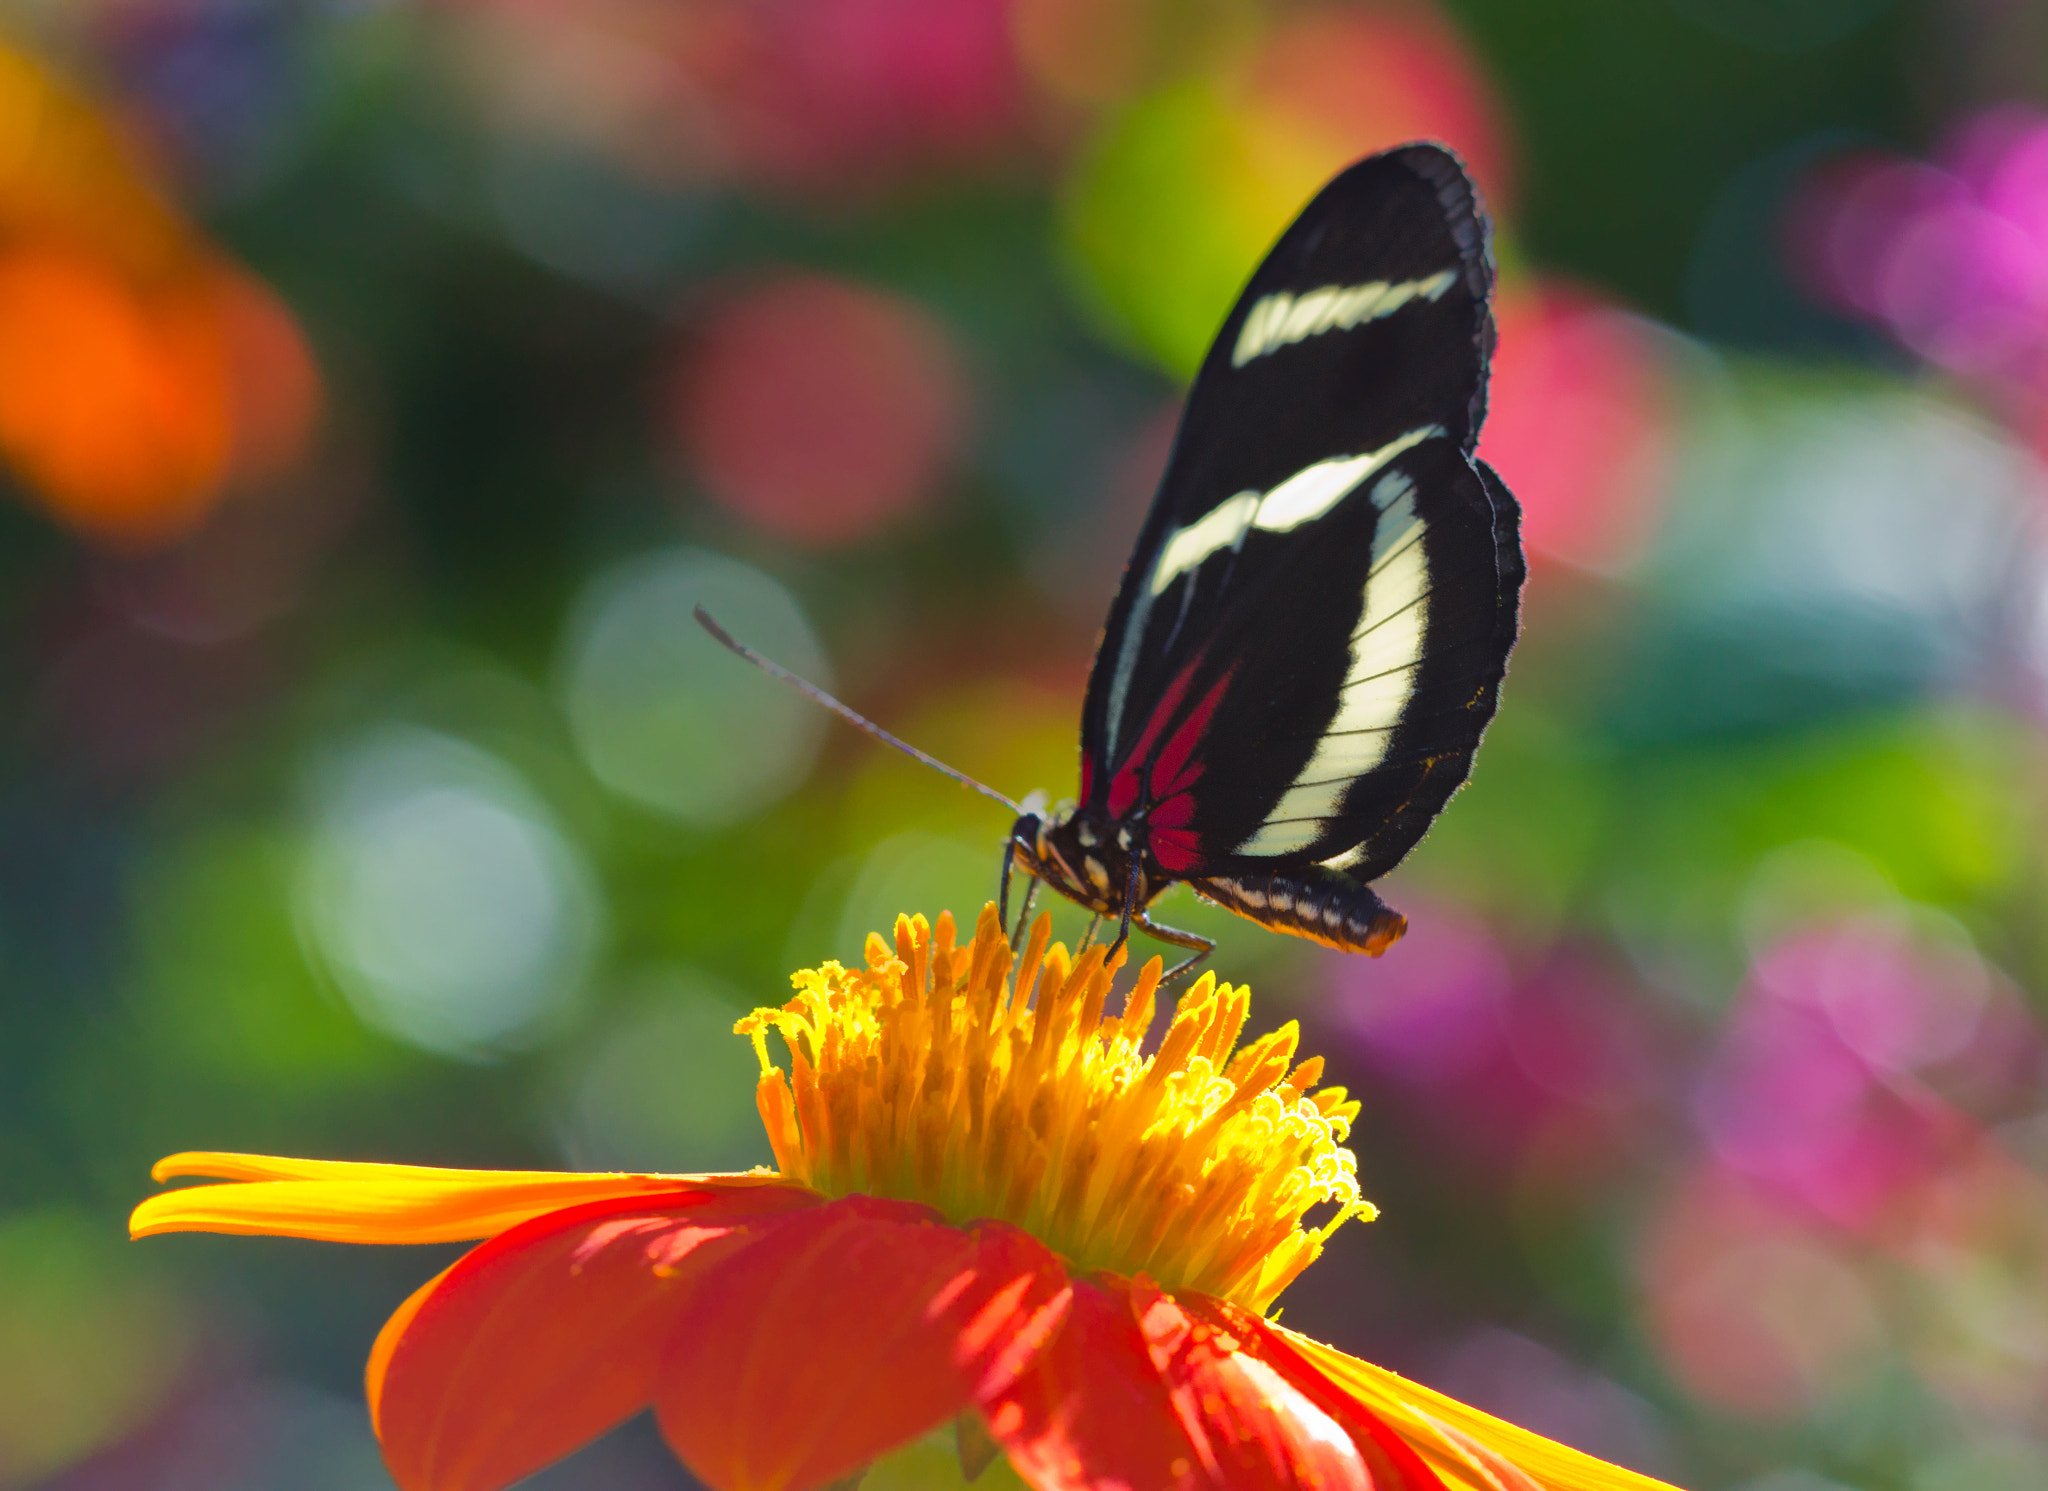 Photograph Butterfly Bokeh Explosion by Bob Decker on 500px